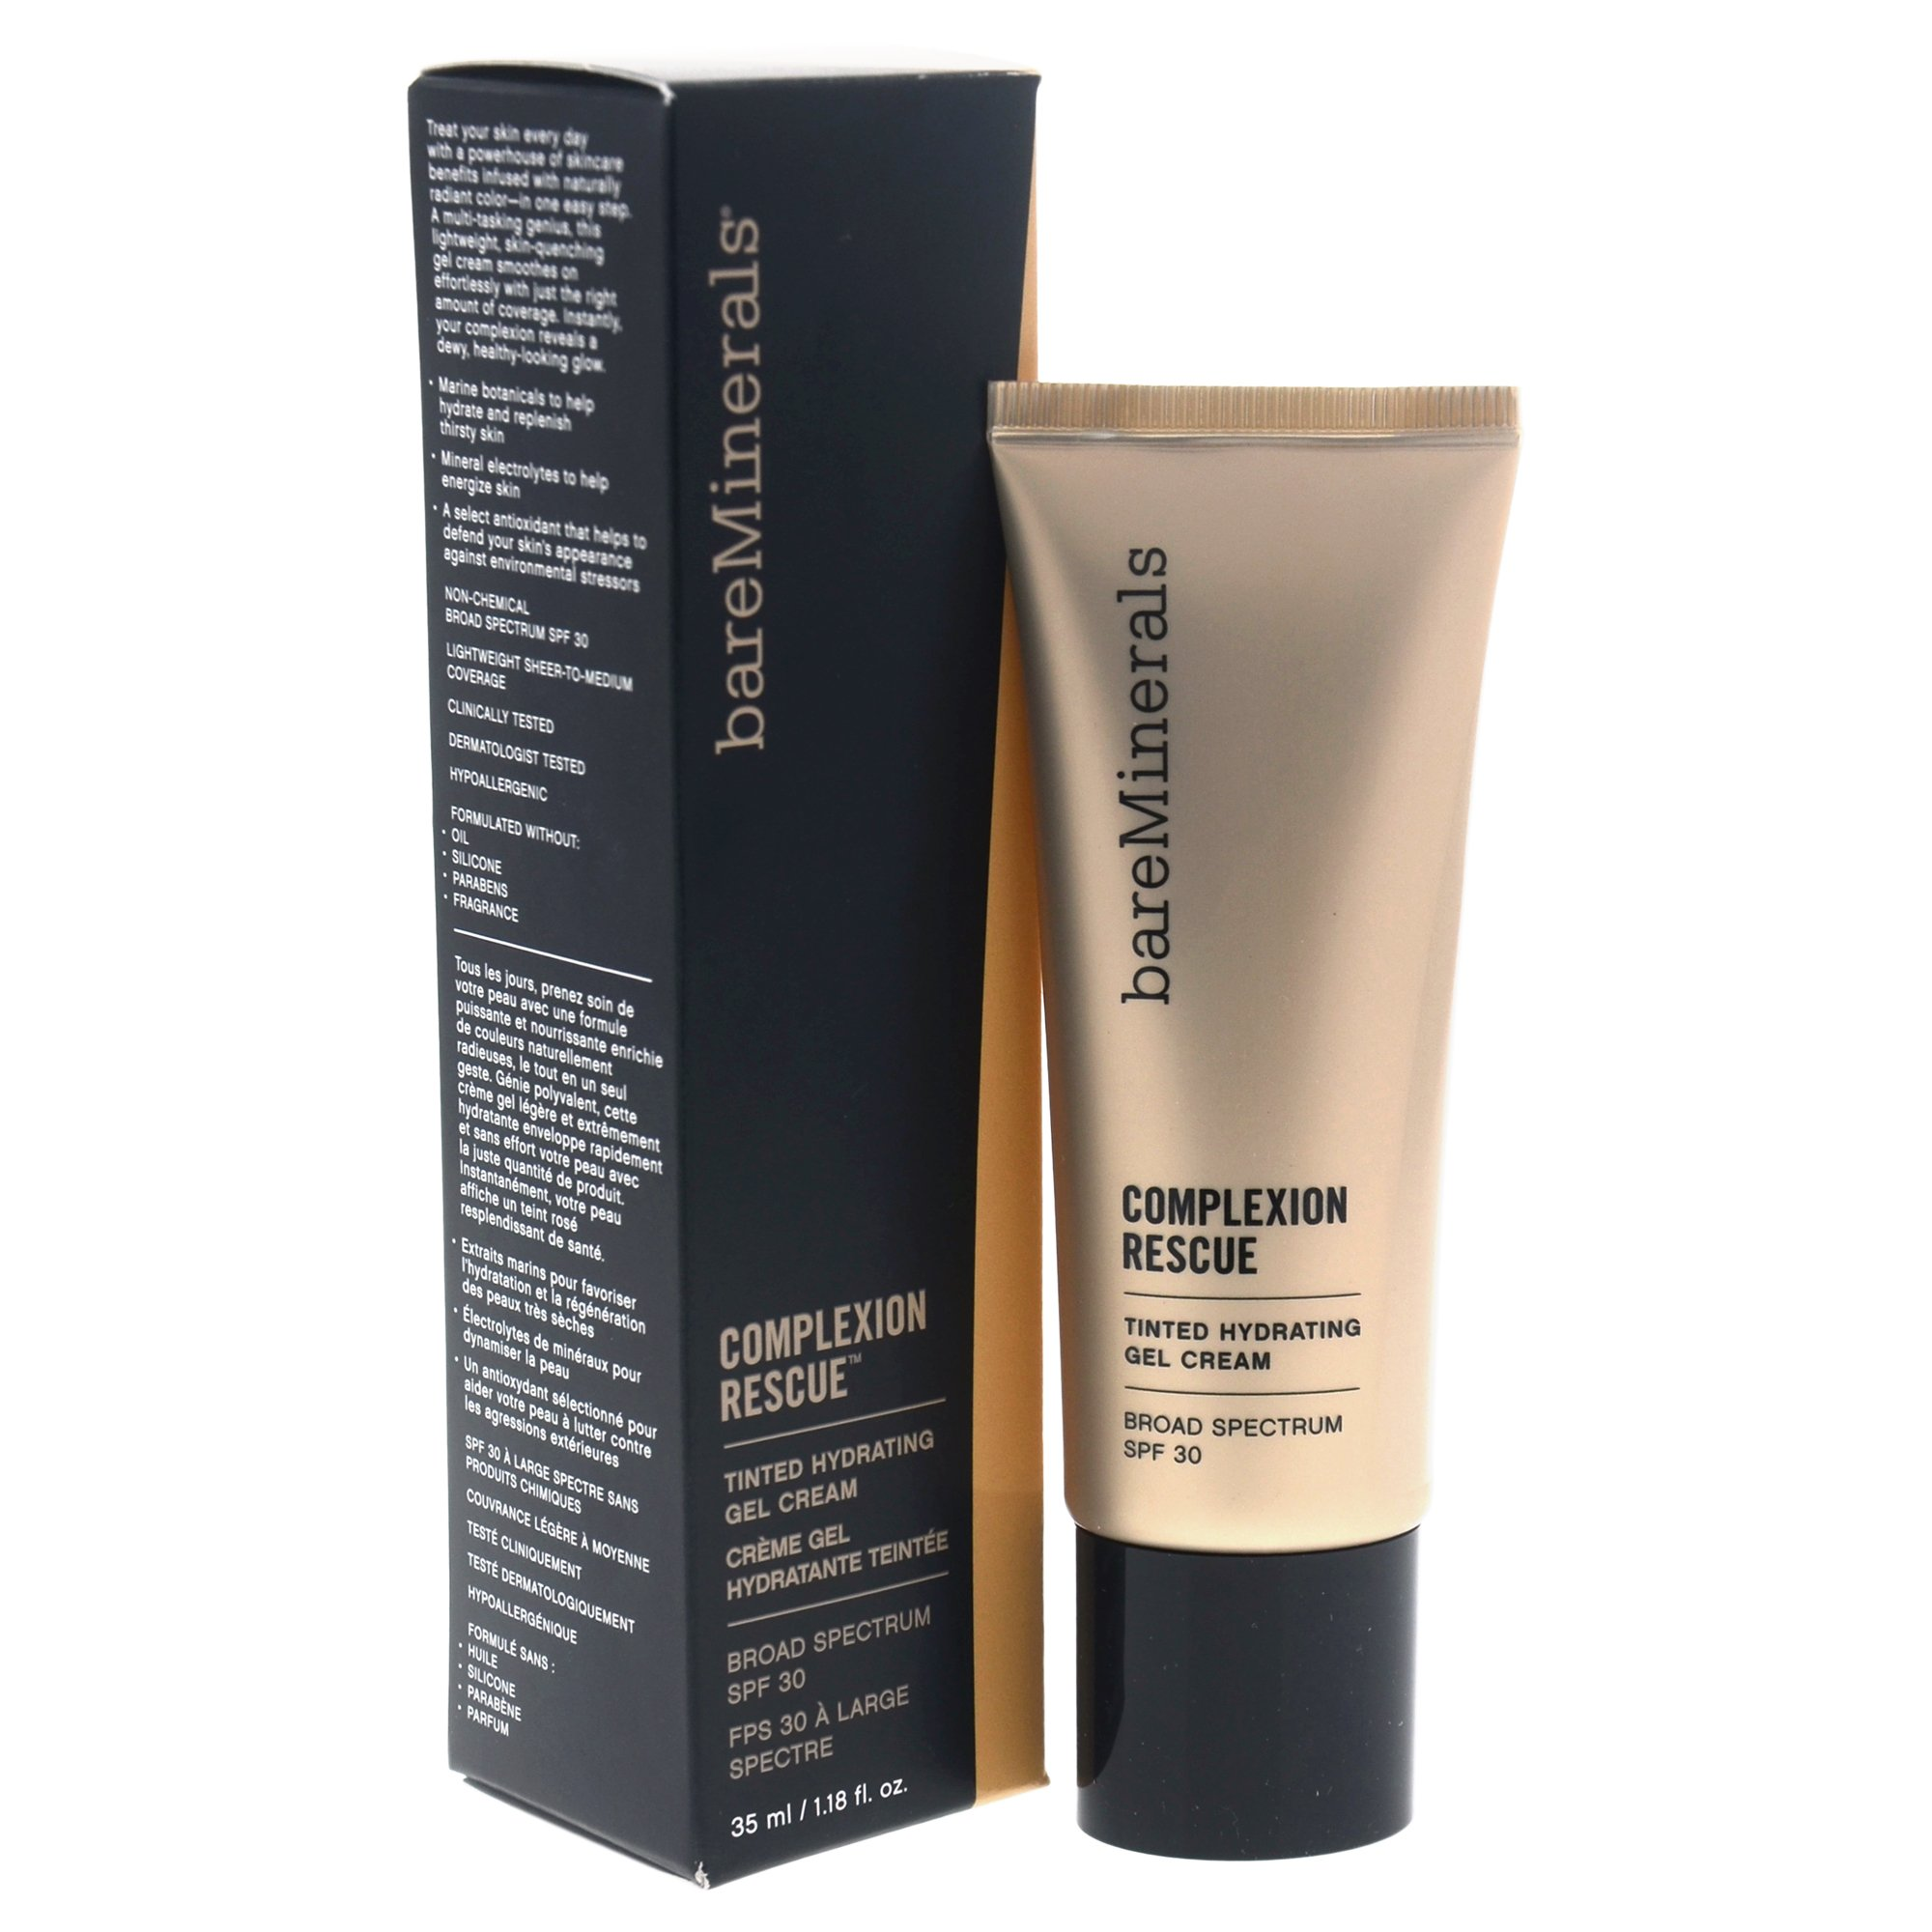 bareMinerals Complexion Rescue Tinted Hydrating Gel Cream-Desert 6.5 ClearZine Acne Solution - The Best Natural Acne Pills with Pantothenic Acid, 90 Capsules